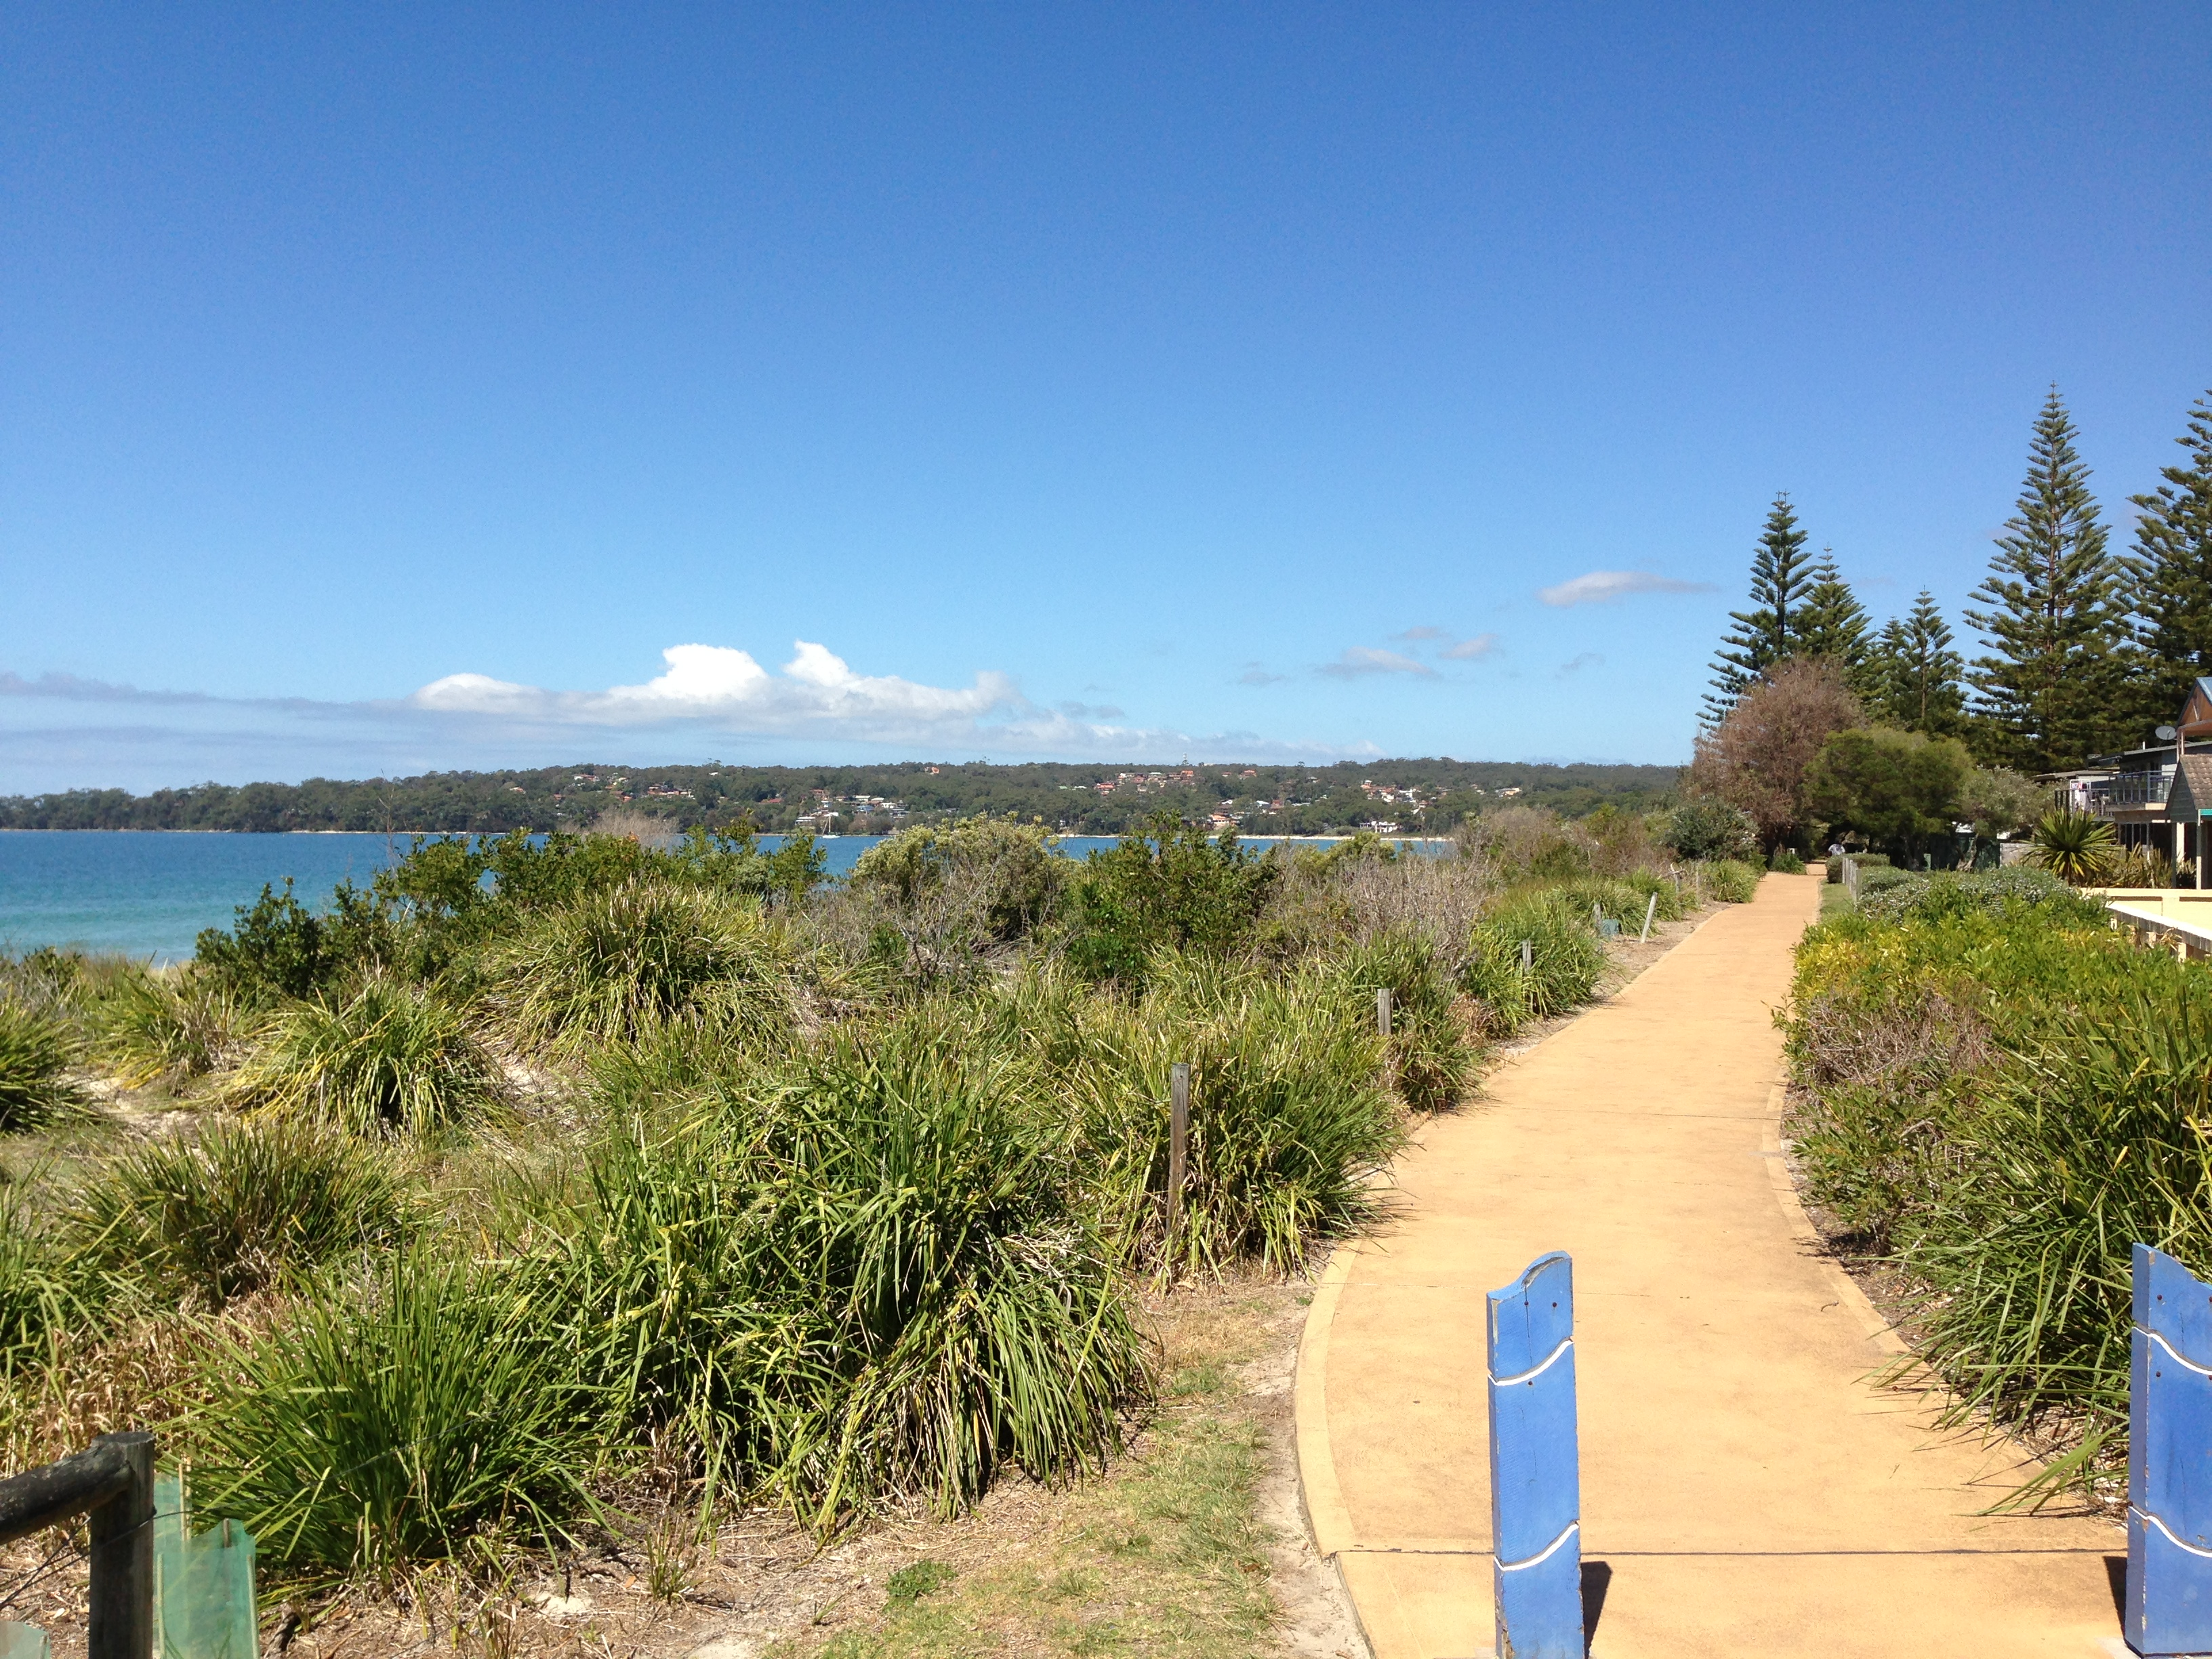 Cycleway alongside Collingwood Beach